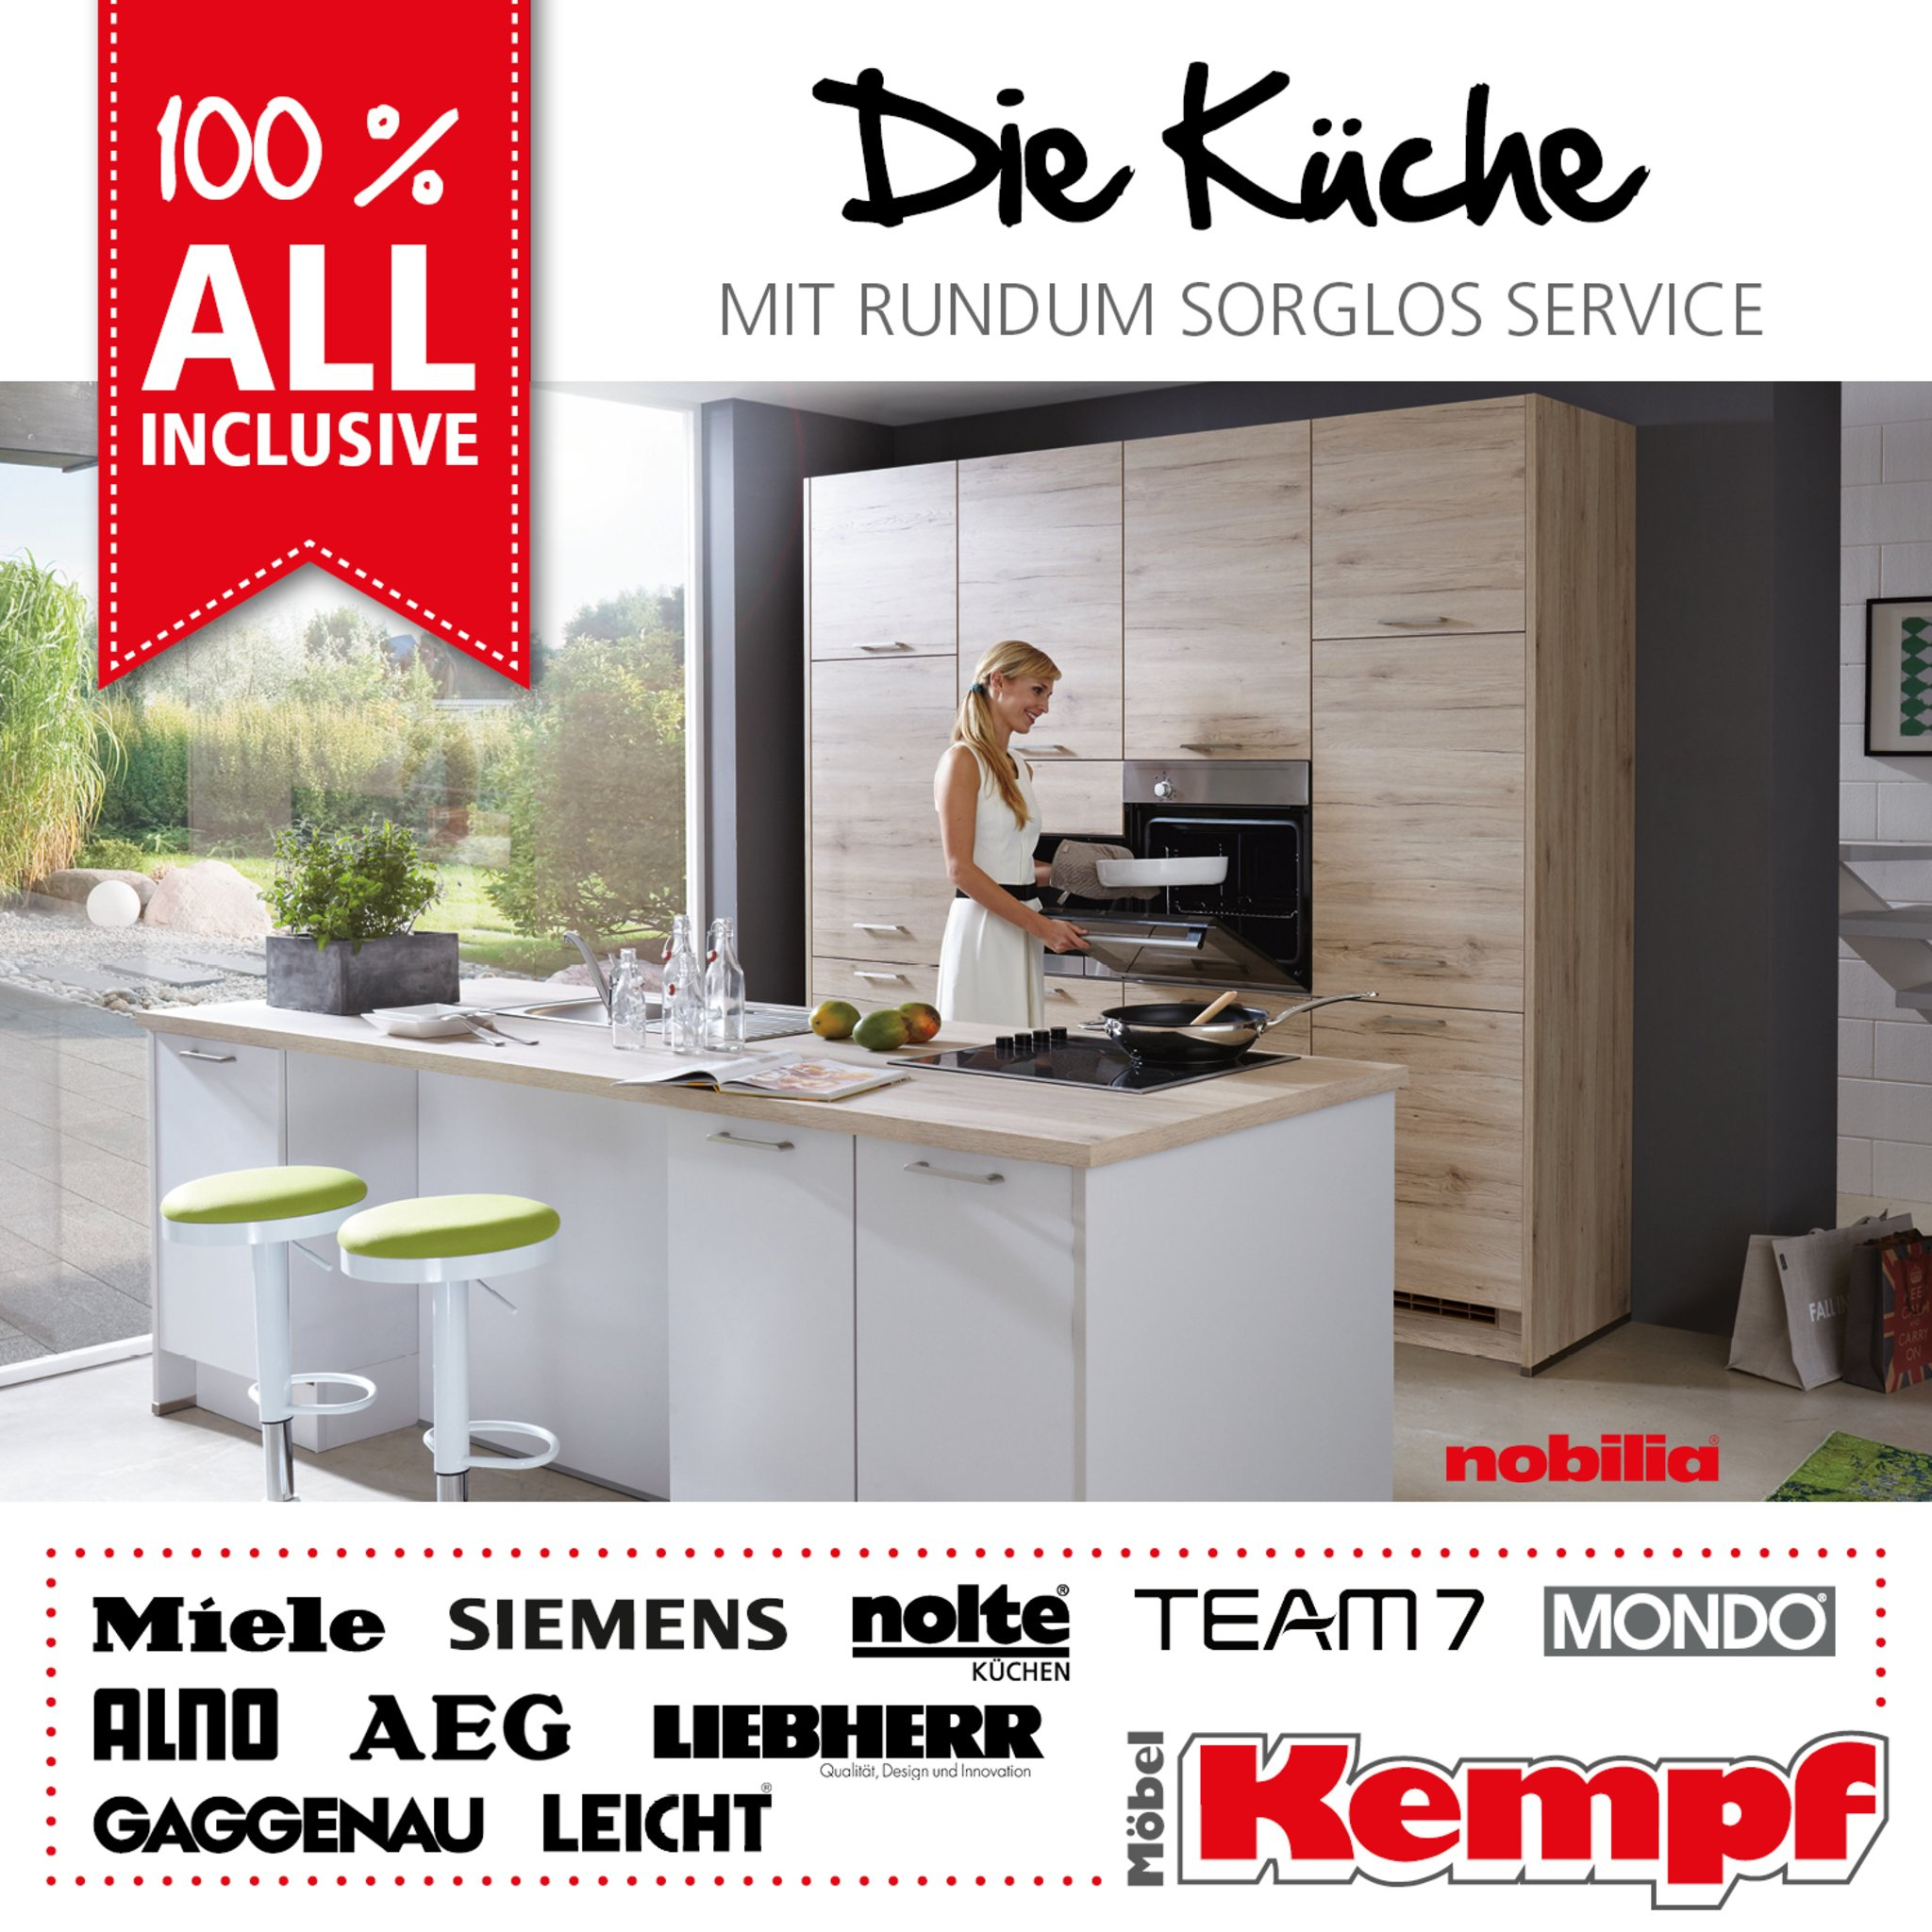 m bel kempf in aschaffenburg und bad k nig bietet 100 prozent k chen service inklusive. Black Bedroom Furniture Sets. Home Design Ideas